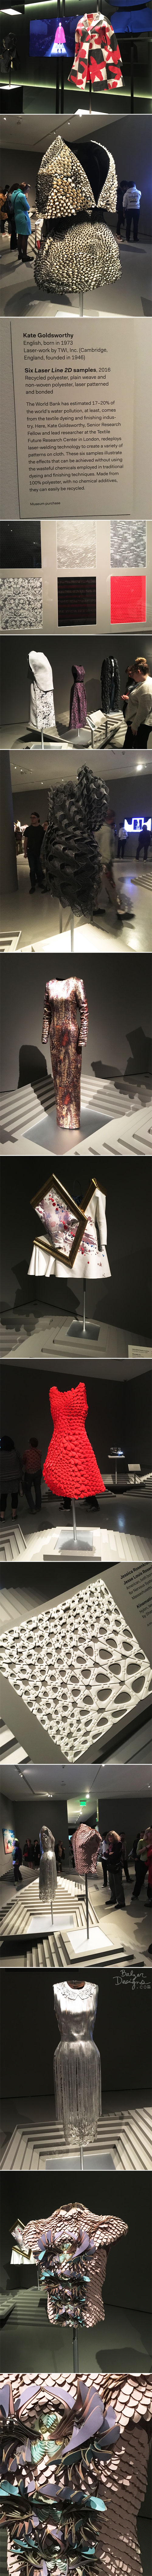 from the Balzer Designs Blog: A Day at the #MFABoston